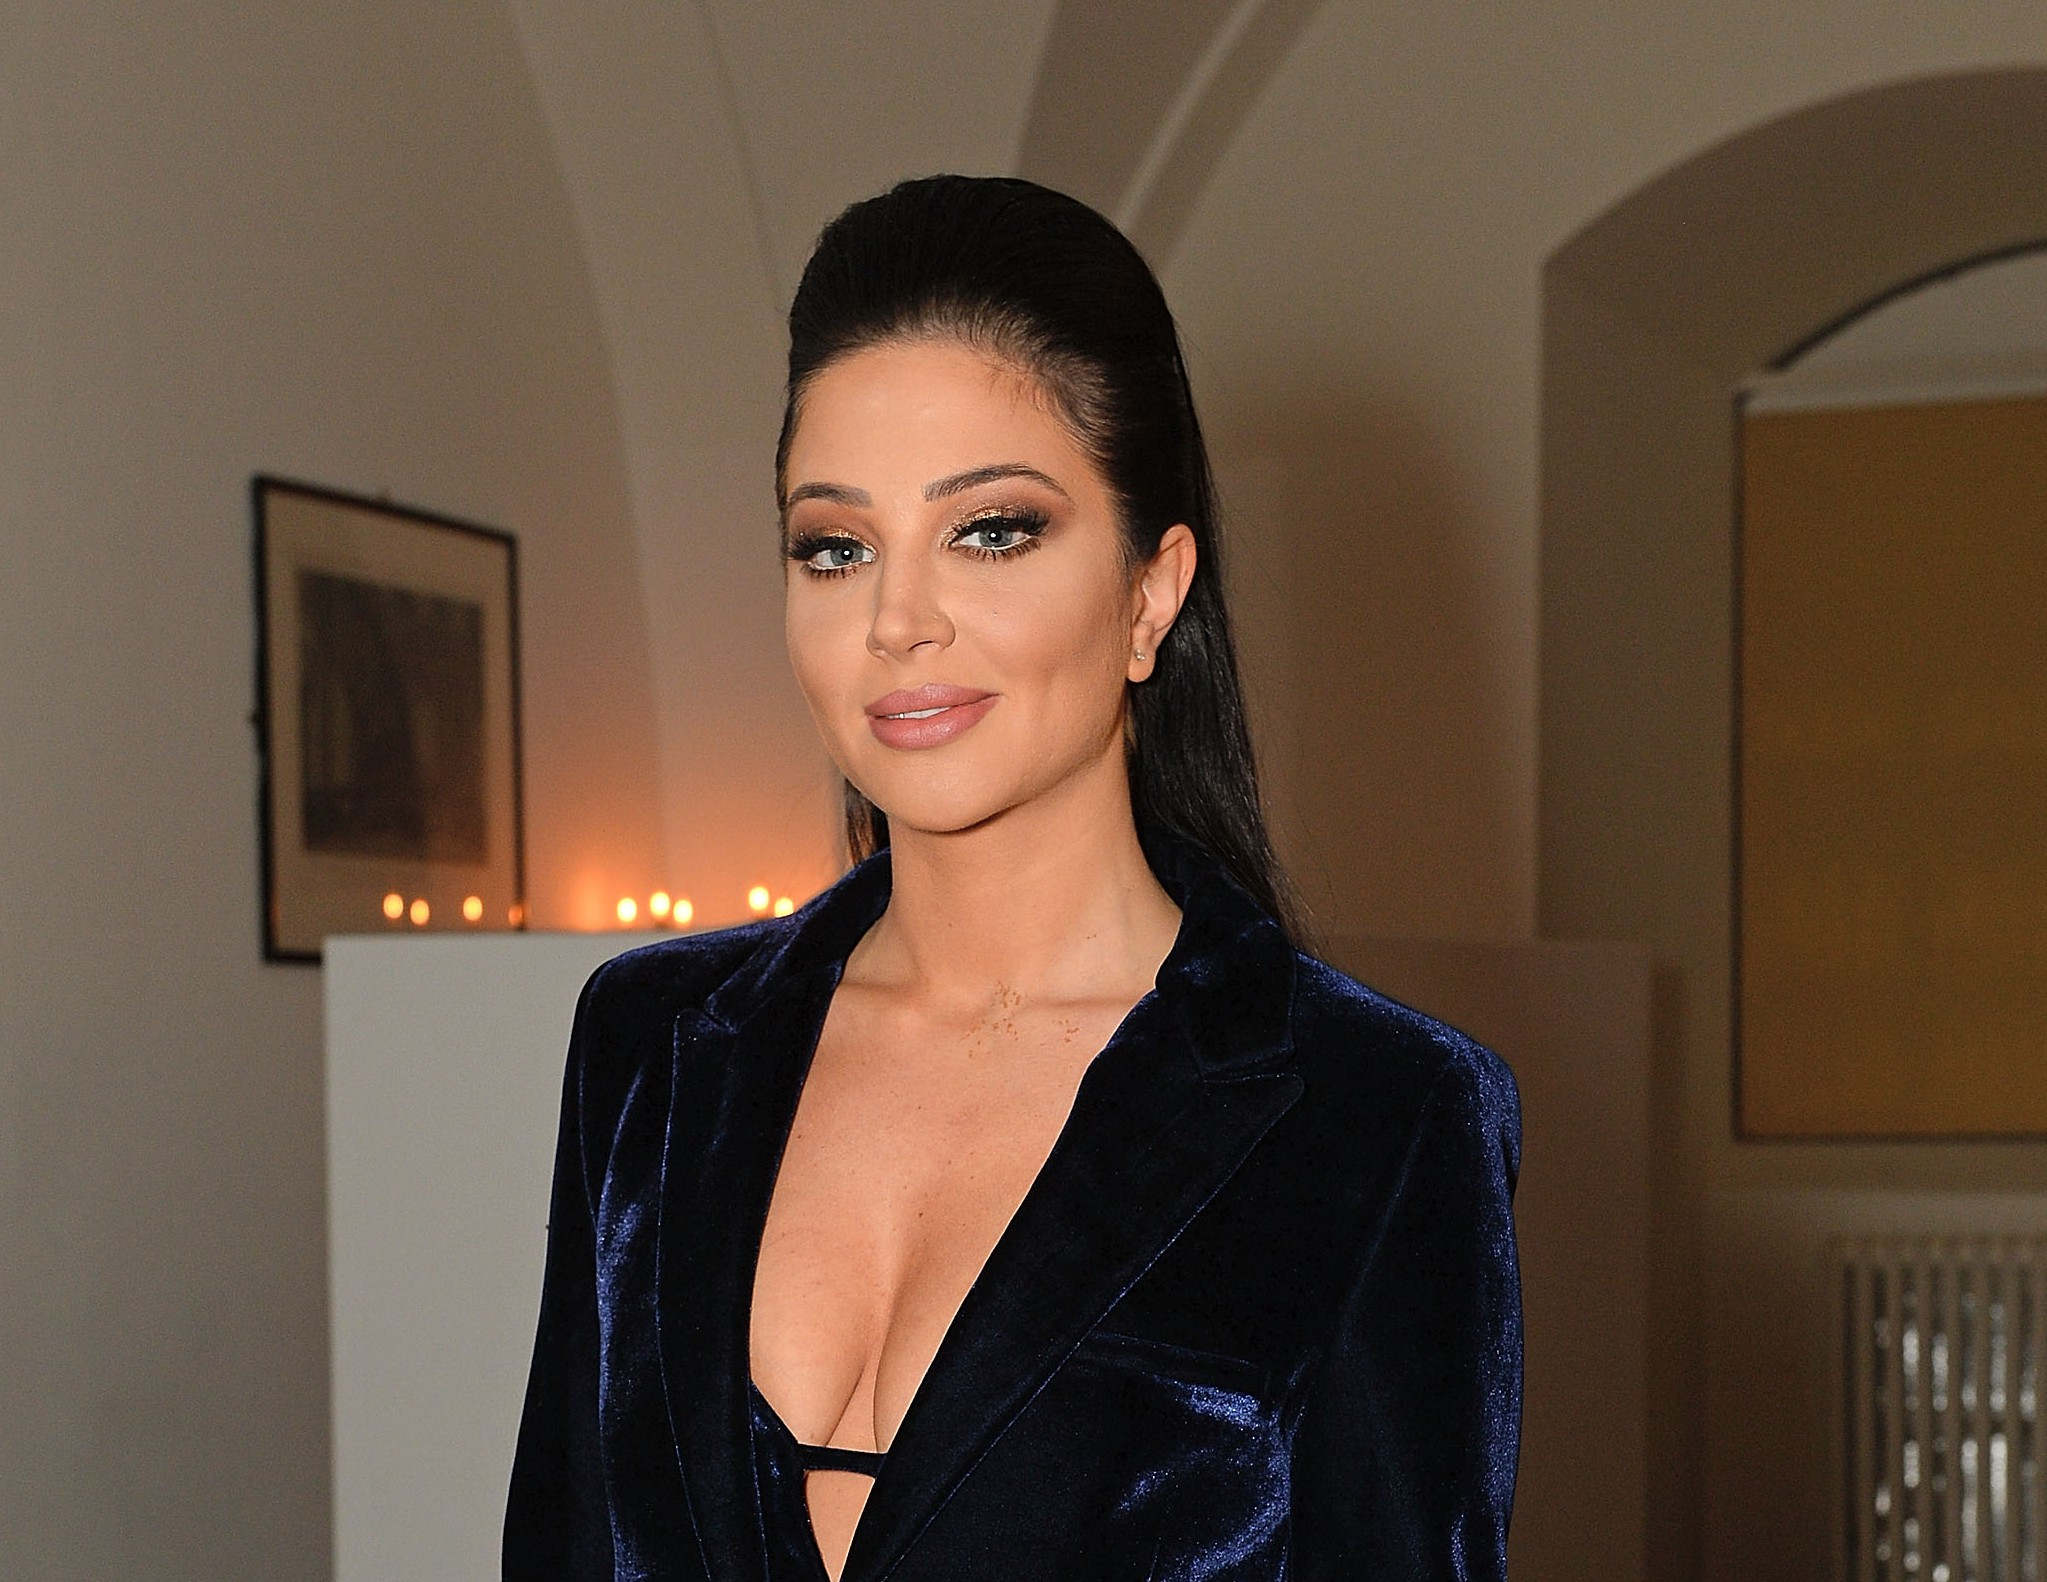 LONDON, ENGLAND - OCTOBER 14: Tulisa Contostavlos attends the Attitude Awards 2015 at Banqueting House on October 14, 2015 in London, England. (Photo by David M. Benett/Dave Benett/Getty Images)